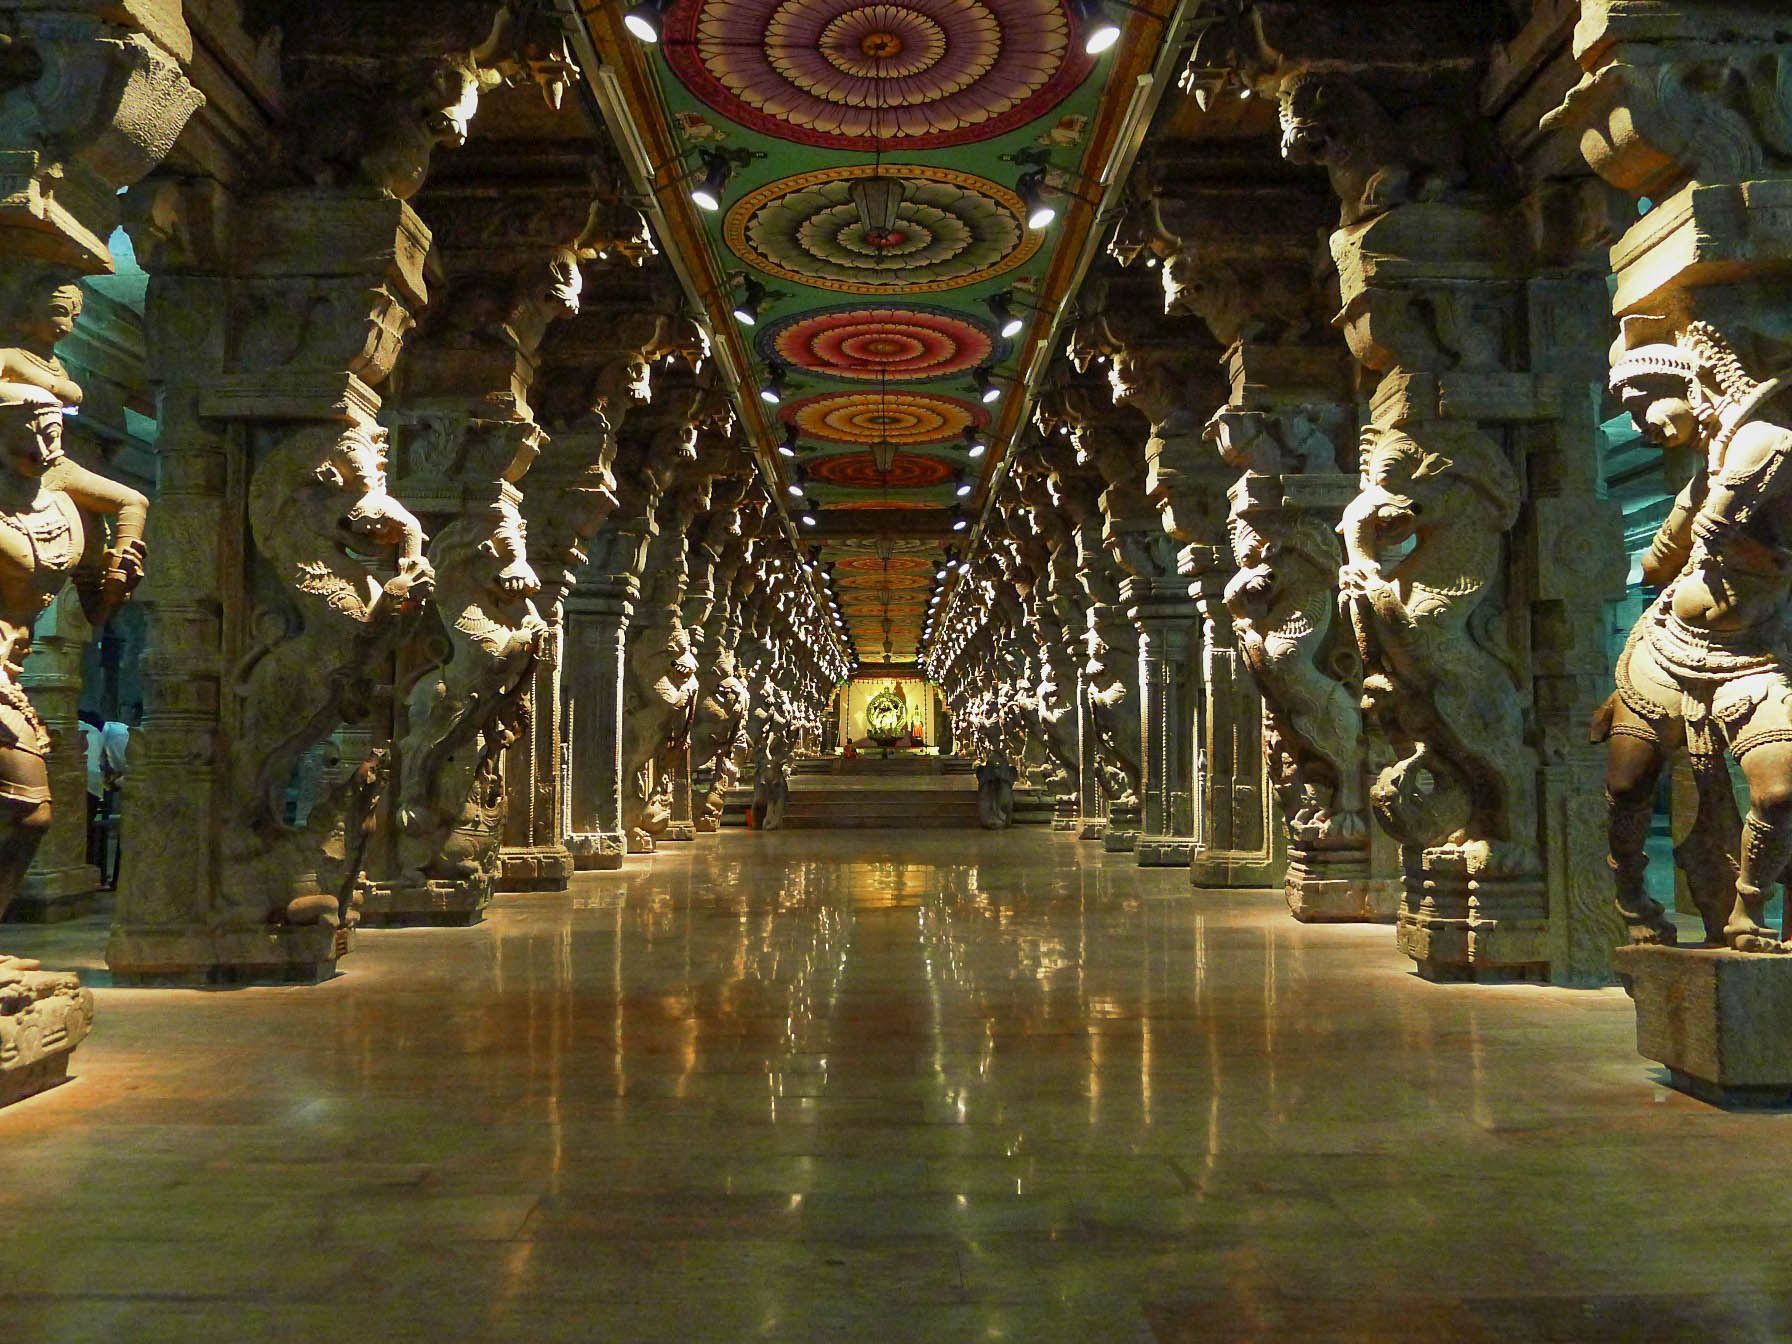 1000+ images about Meenakshi Temple on Pinterest | Madurai ...